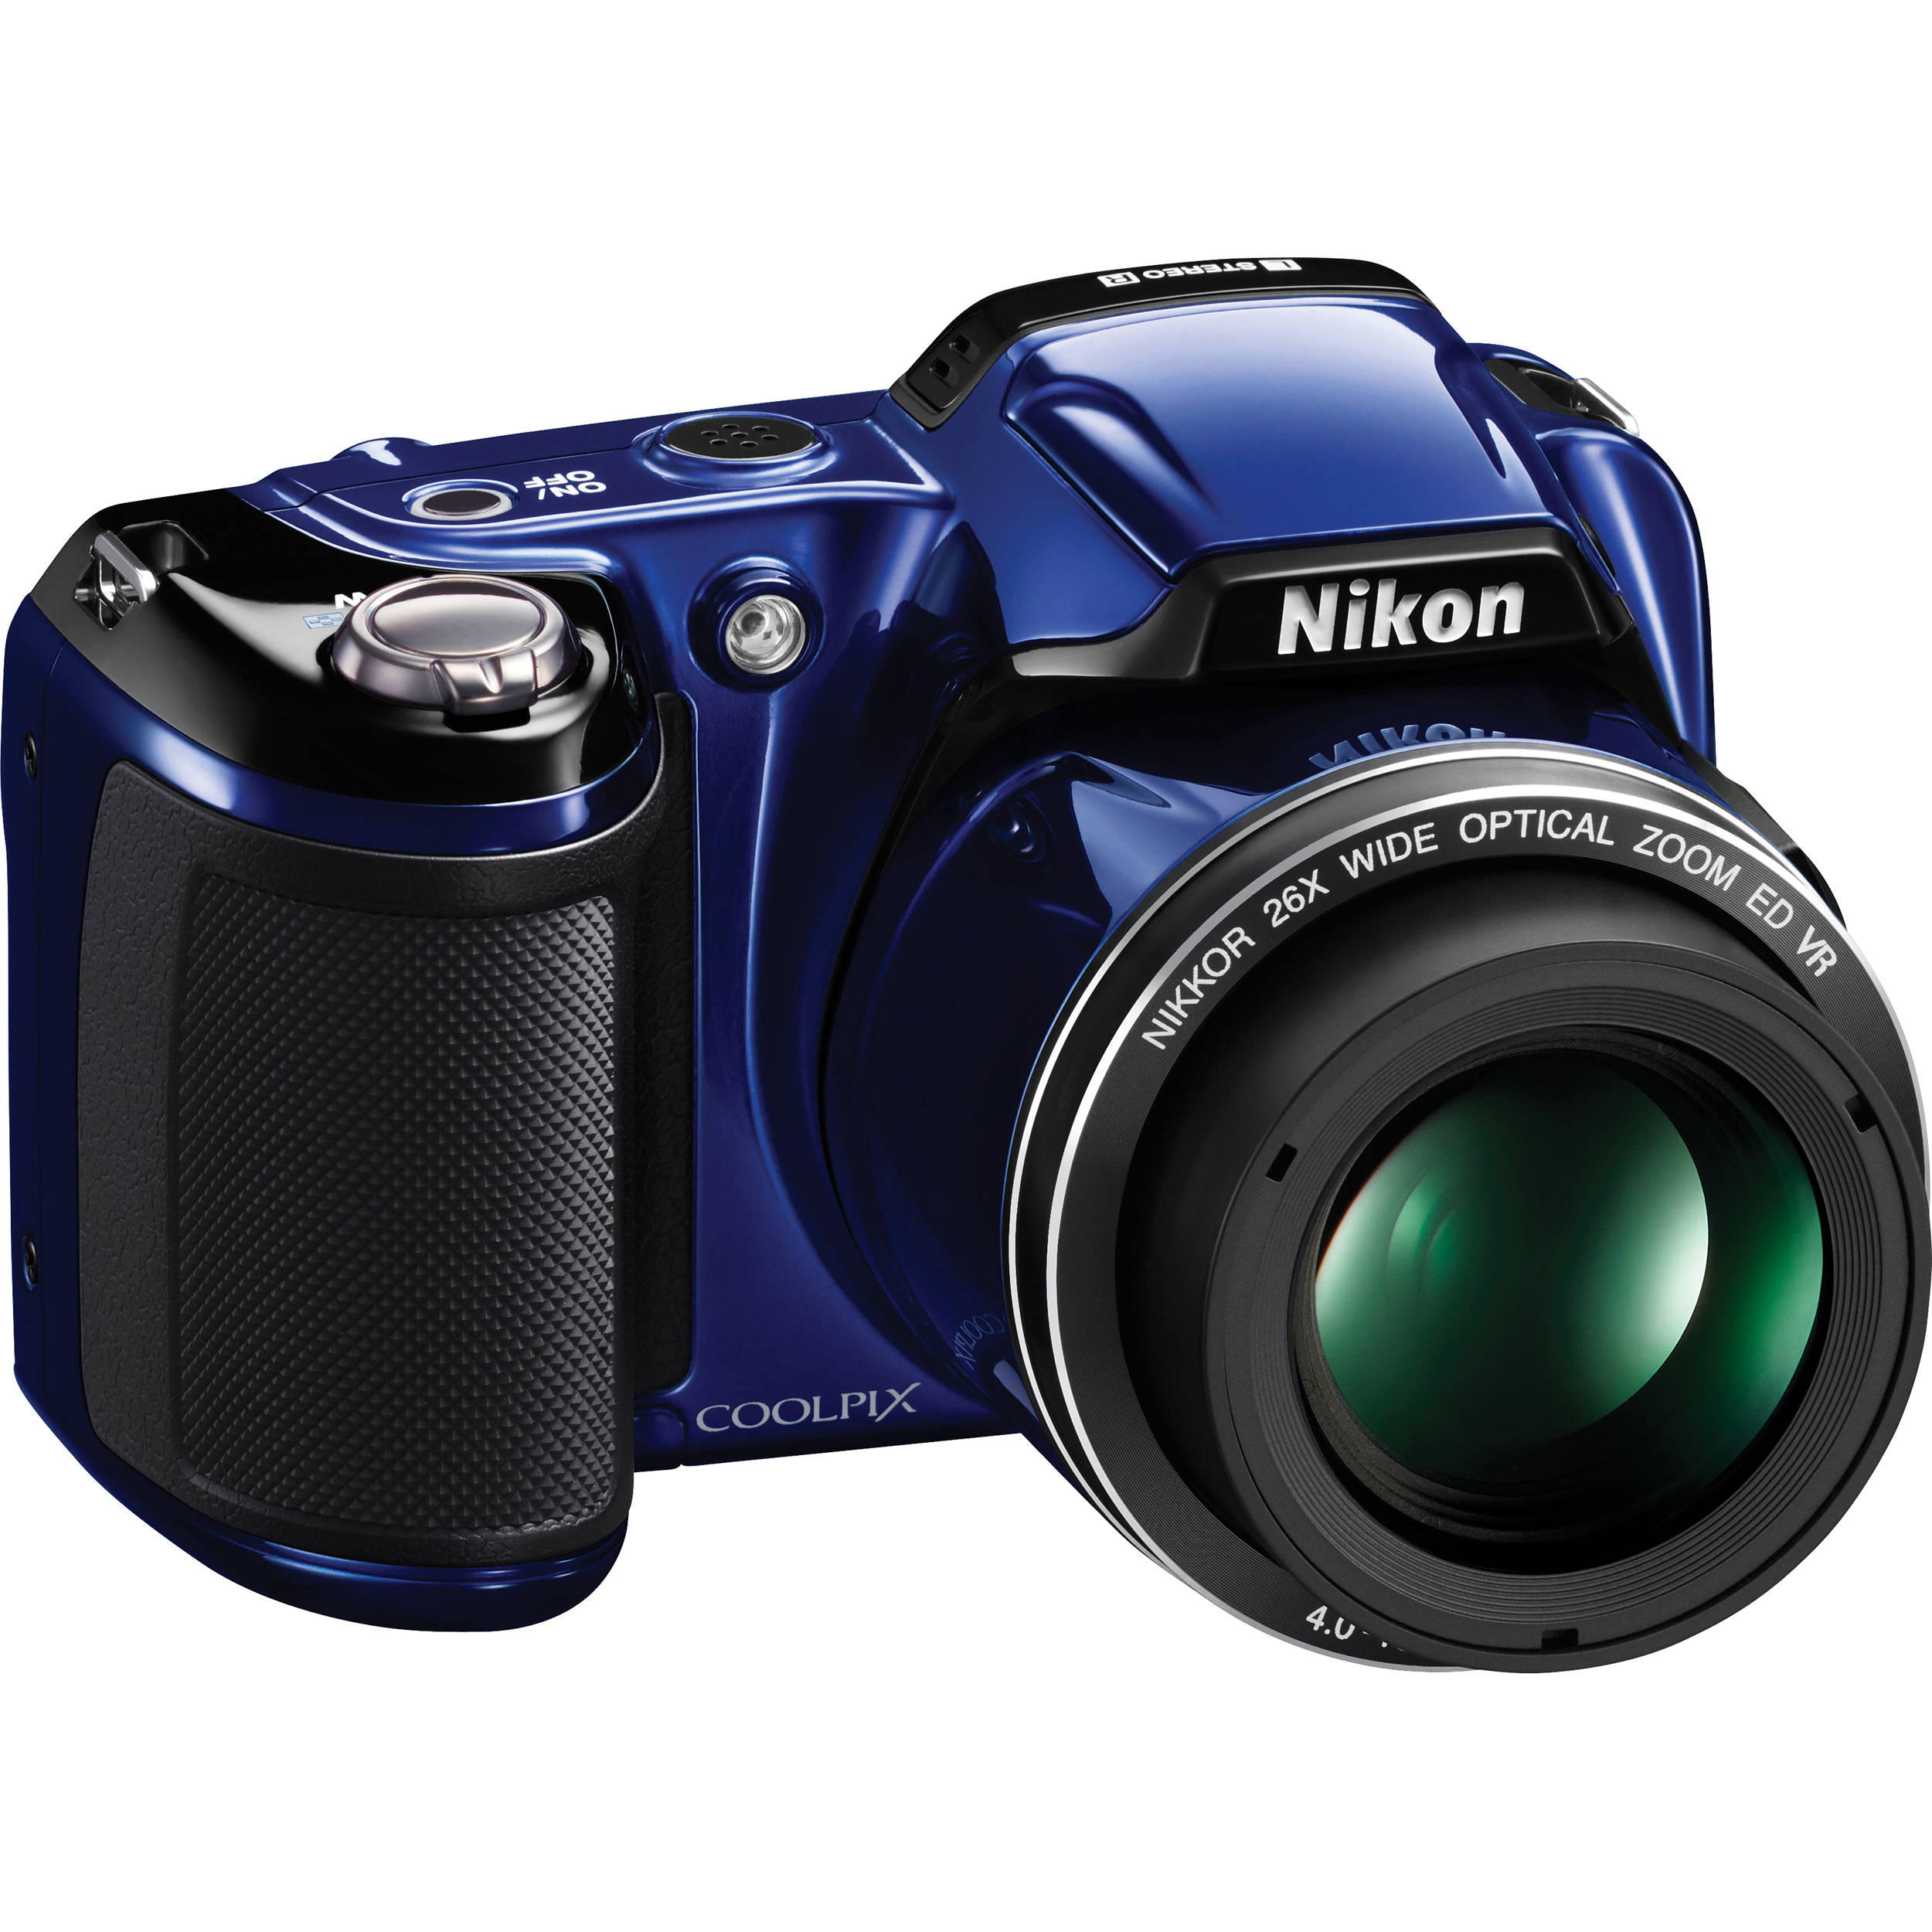 Nikon Coolpix L810 Digital Camera Blue 26296 B Amp H Photo Video